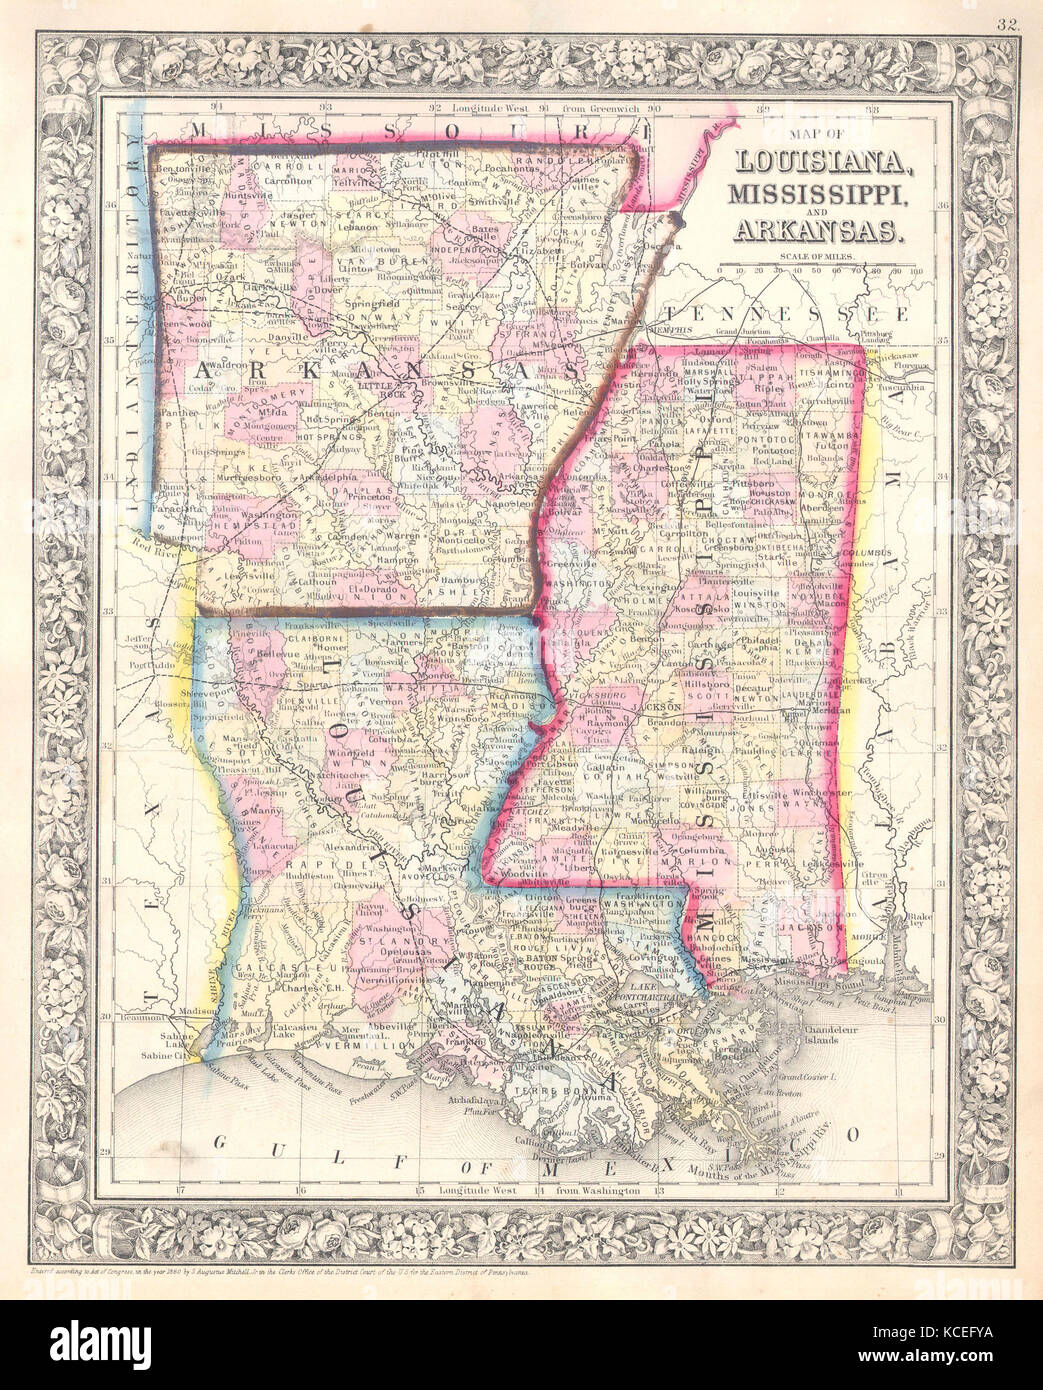 Mississippi And Louisiana Map.1864 Mitchell Map Of Louisiana Mississippi And Arkansas Stock